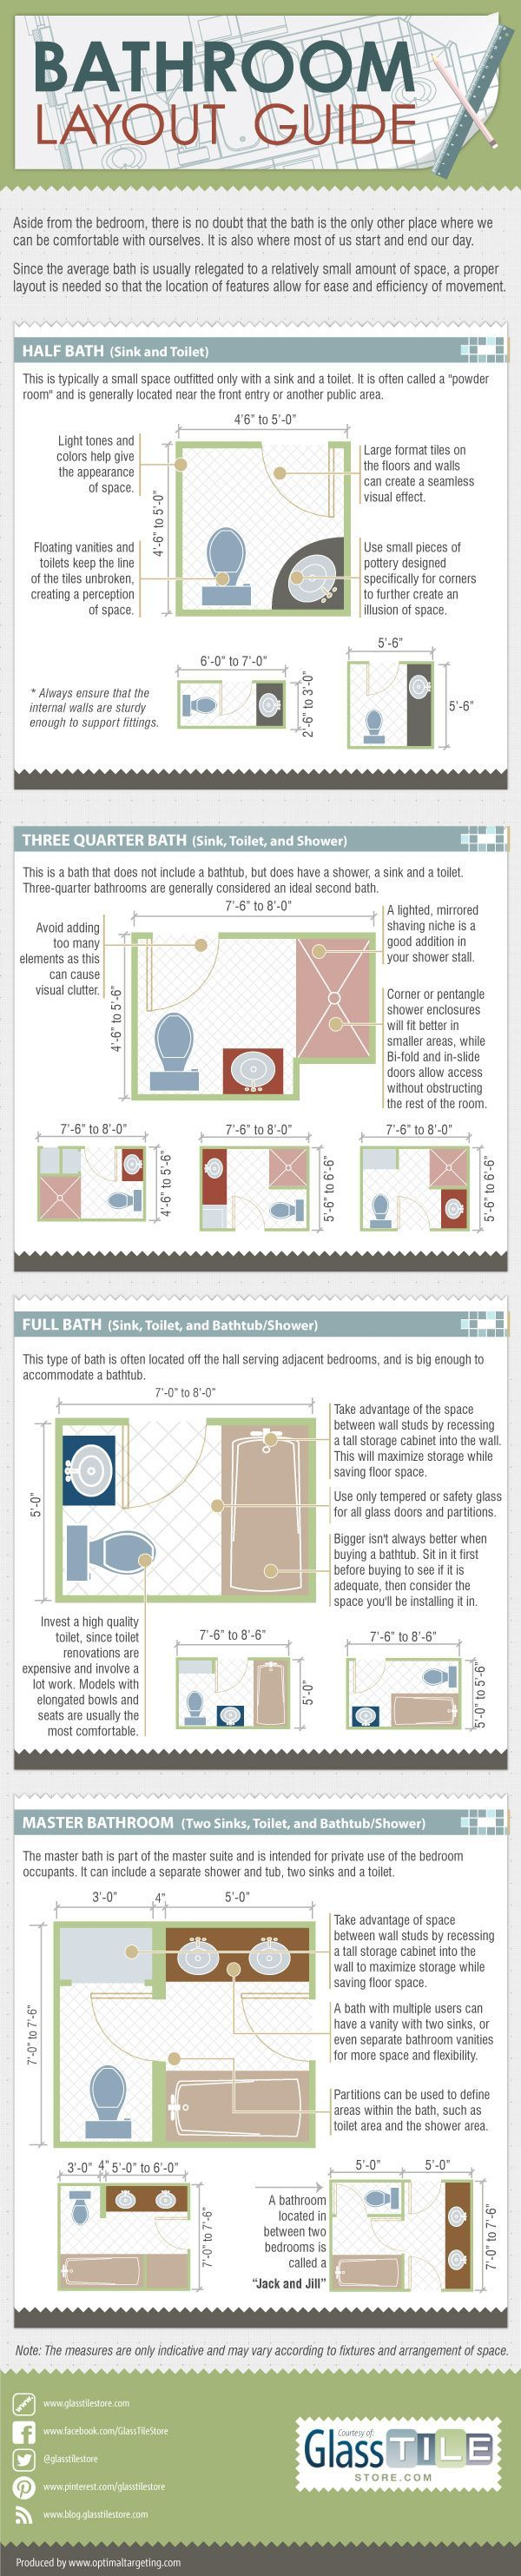 From shower pan to water tight wall building a custom tile shower from shower pan to water tight wall building a custom tile shower requires know how and patience but can be very gratifying these tips can help doublecrazyfo Choice Image